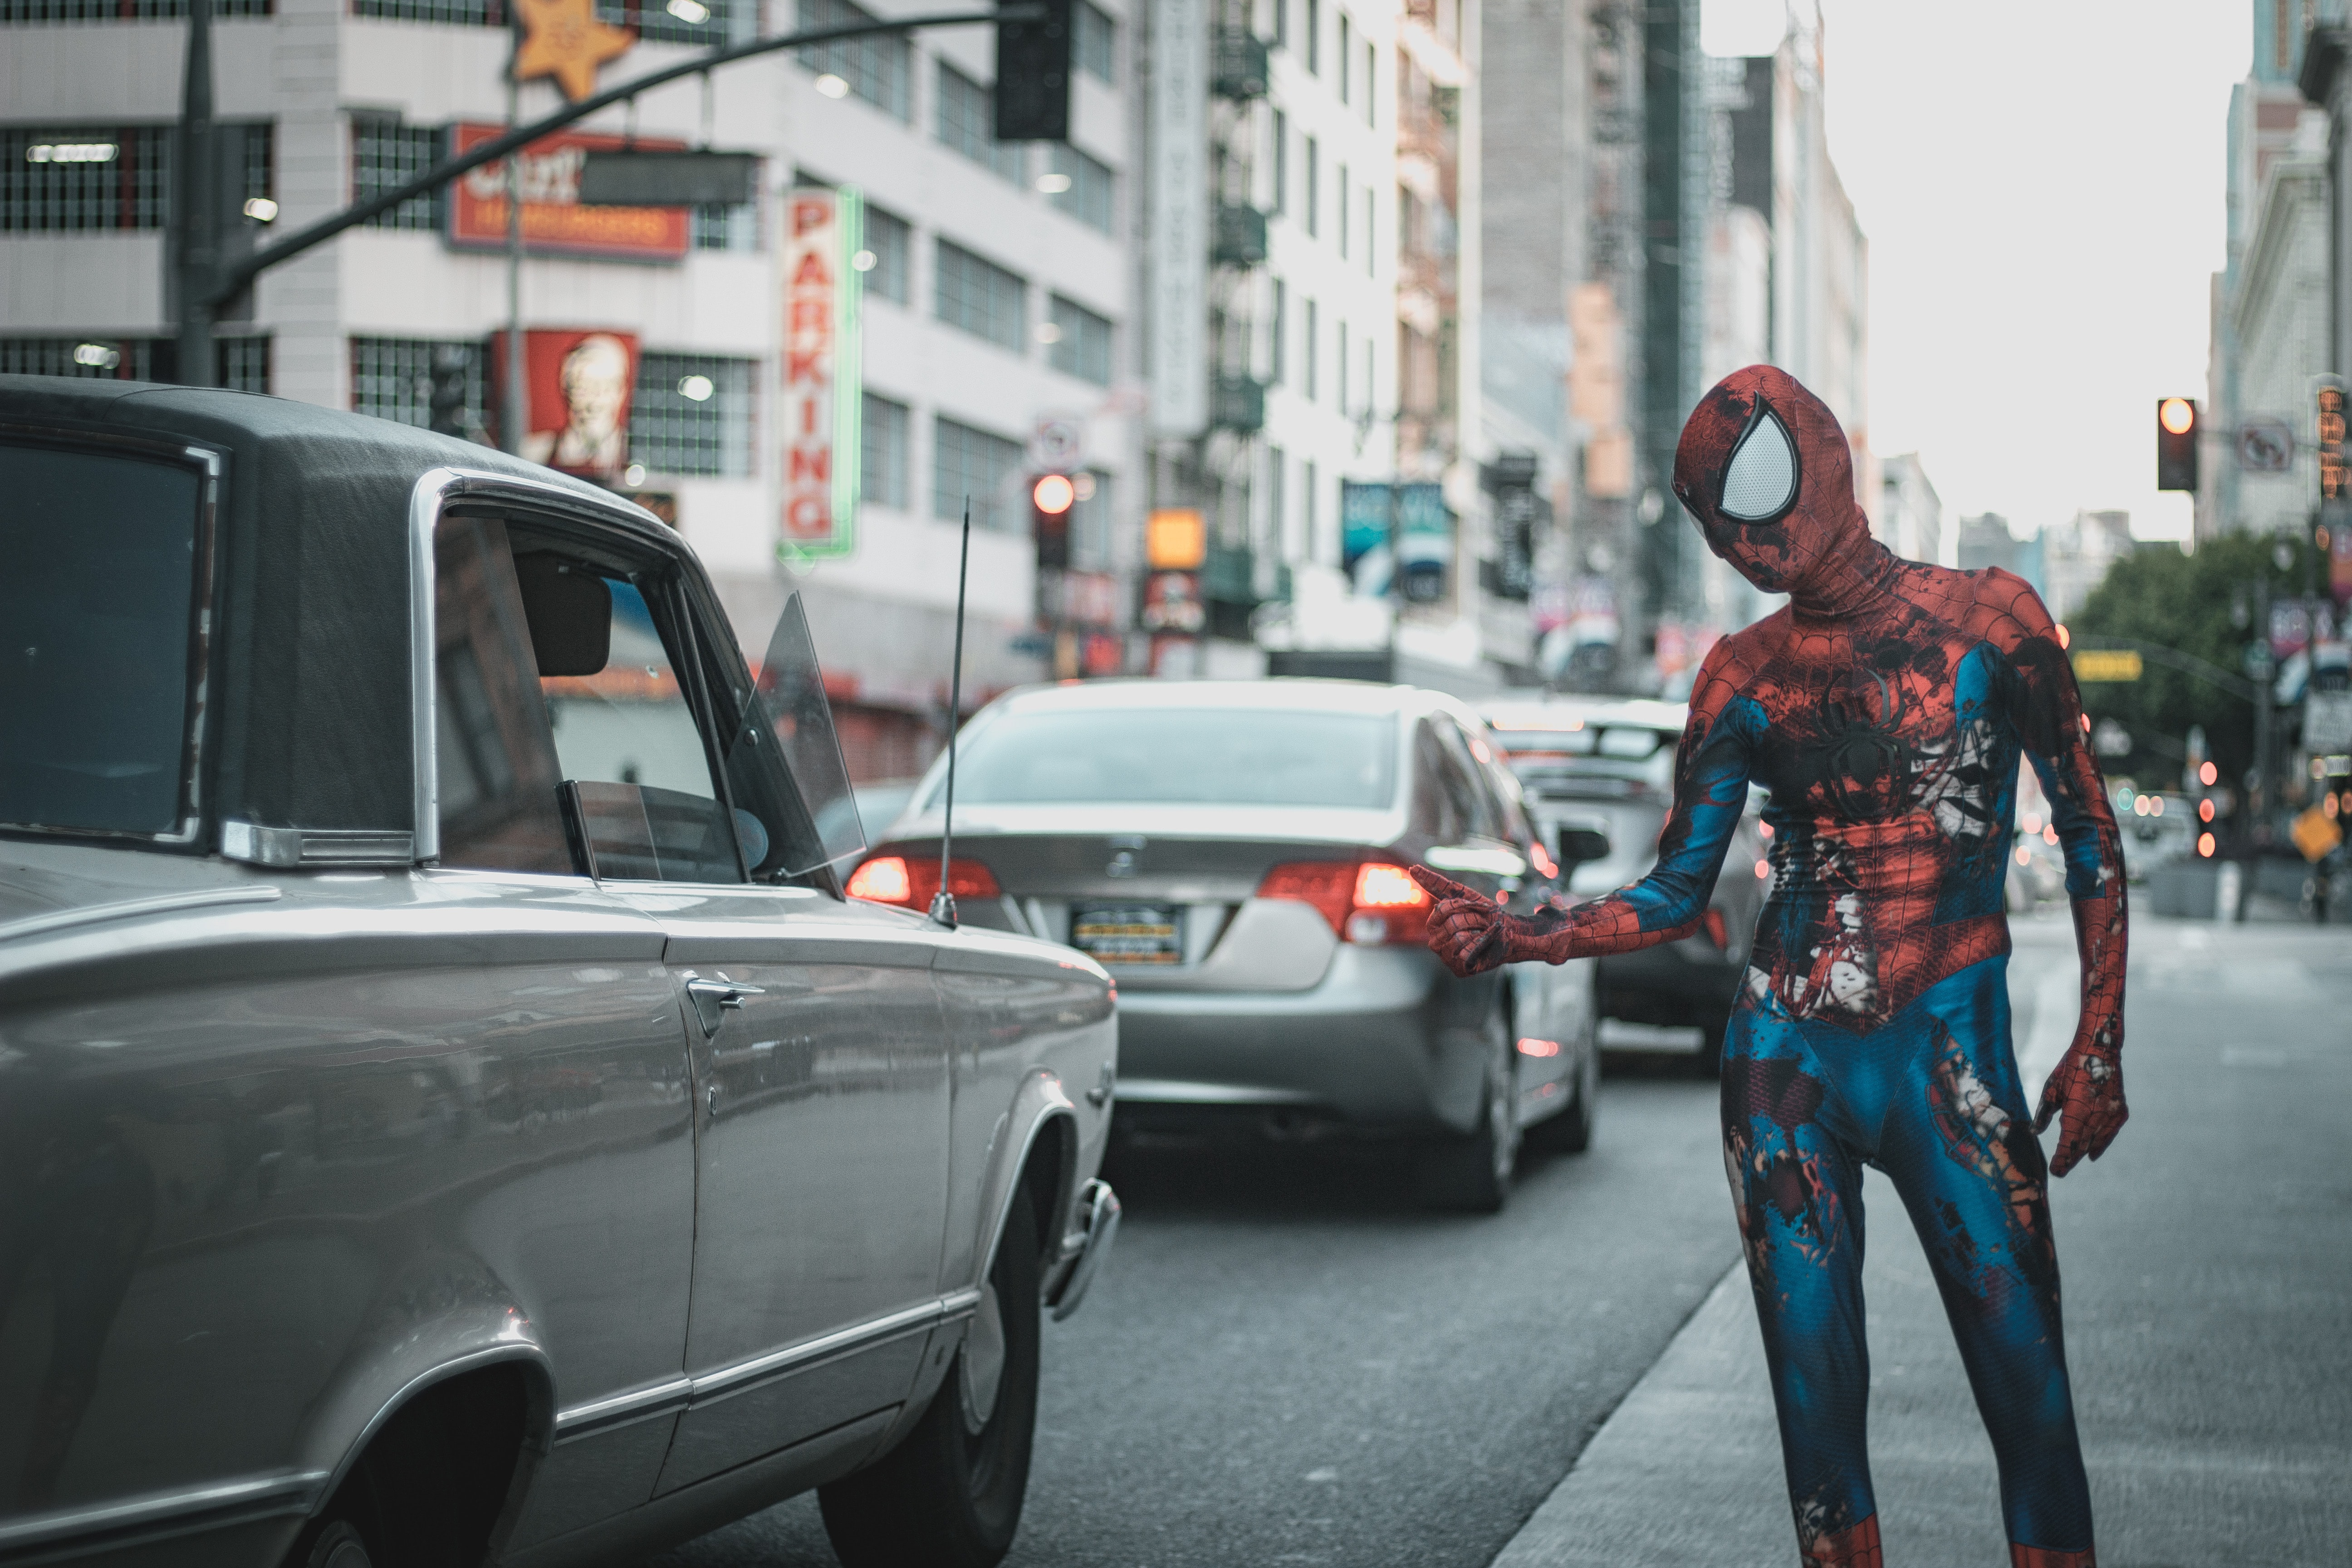 man wearing Spider-Man costume standing on sidewalk with cars on roadway